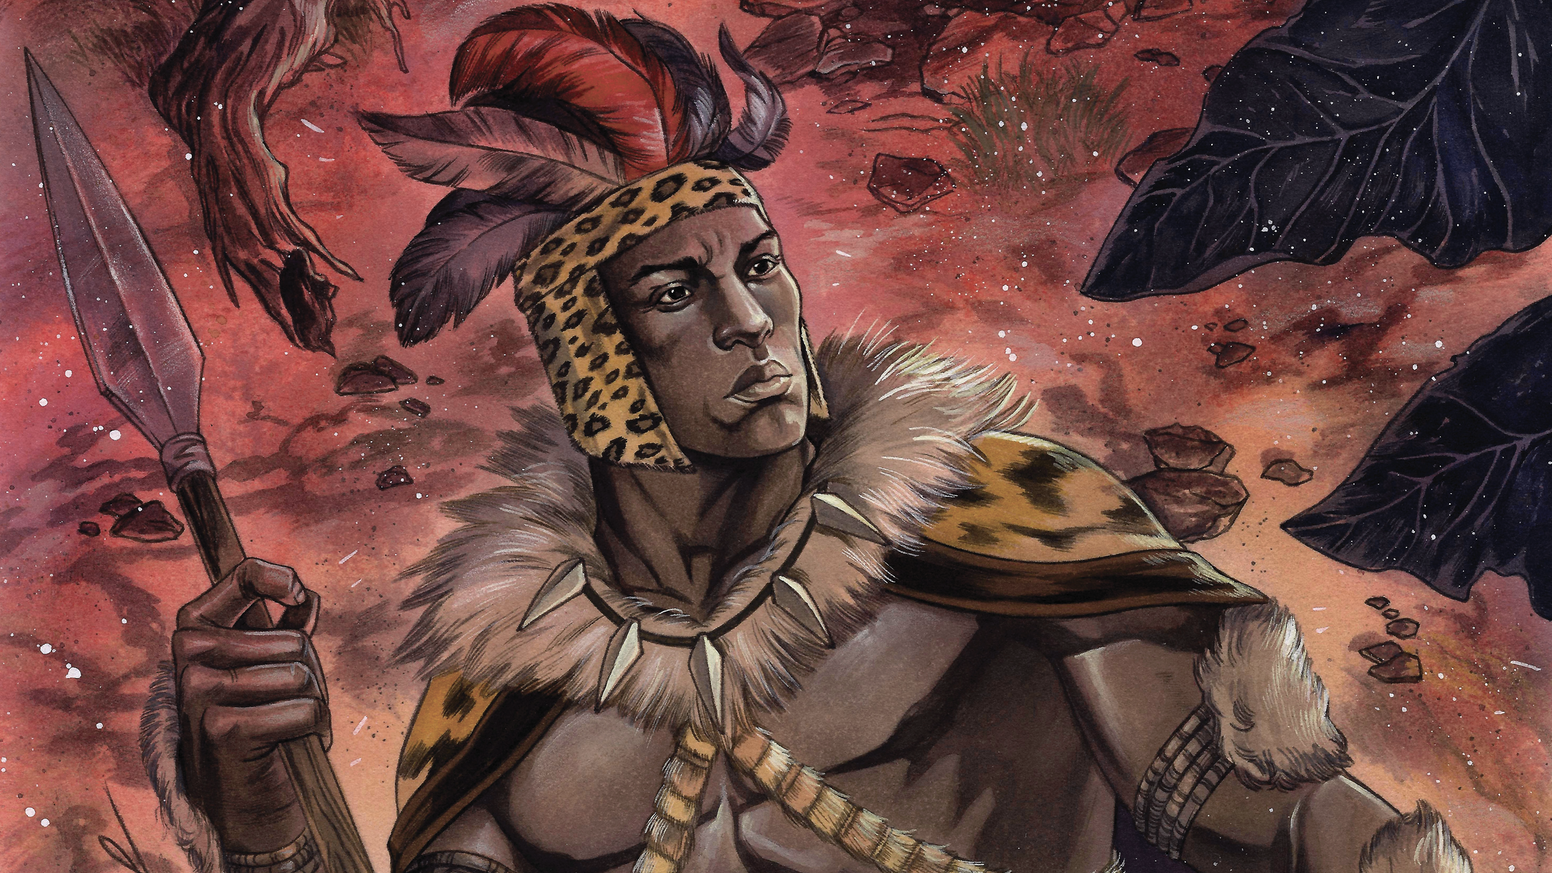 Follow the epic rise and fall of Shaka, the illegitimate son who grew to become Southern Africa's greatest Zulu warrior king.